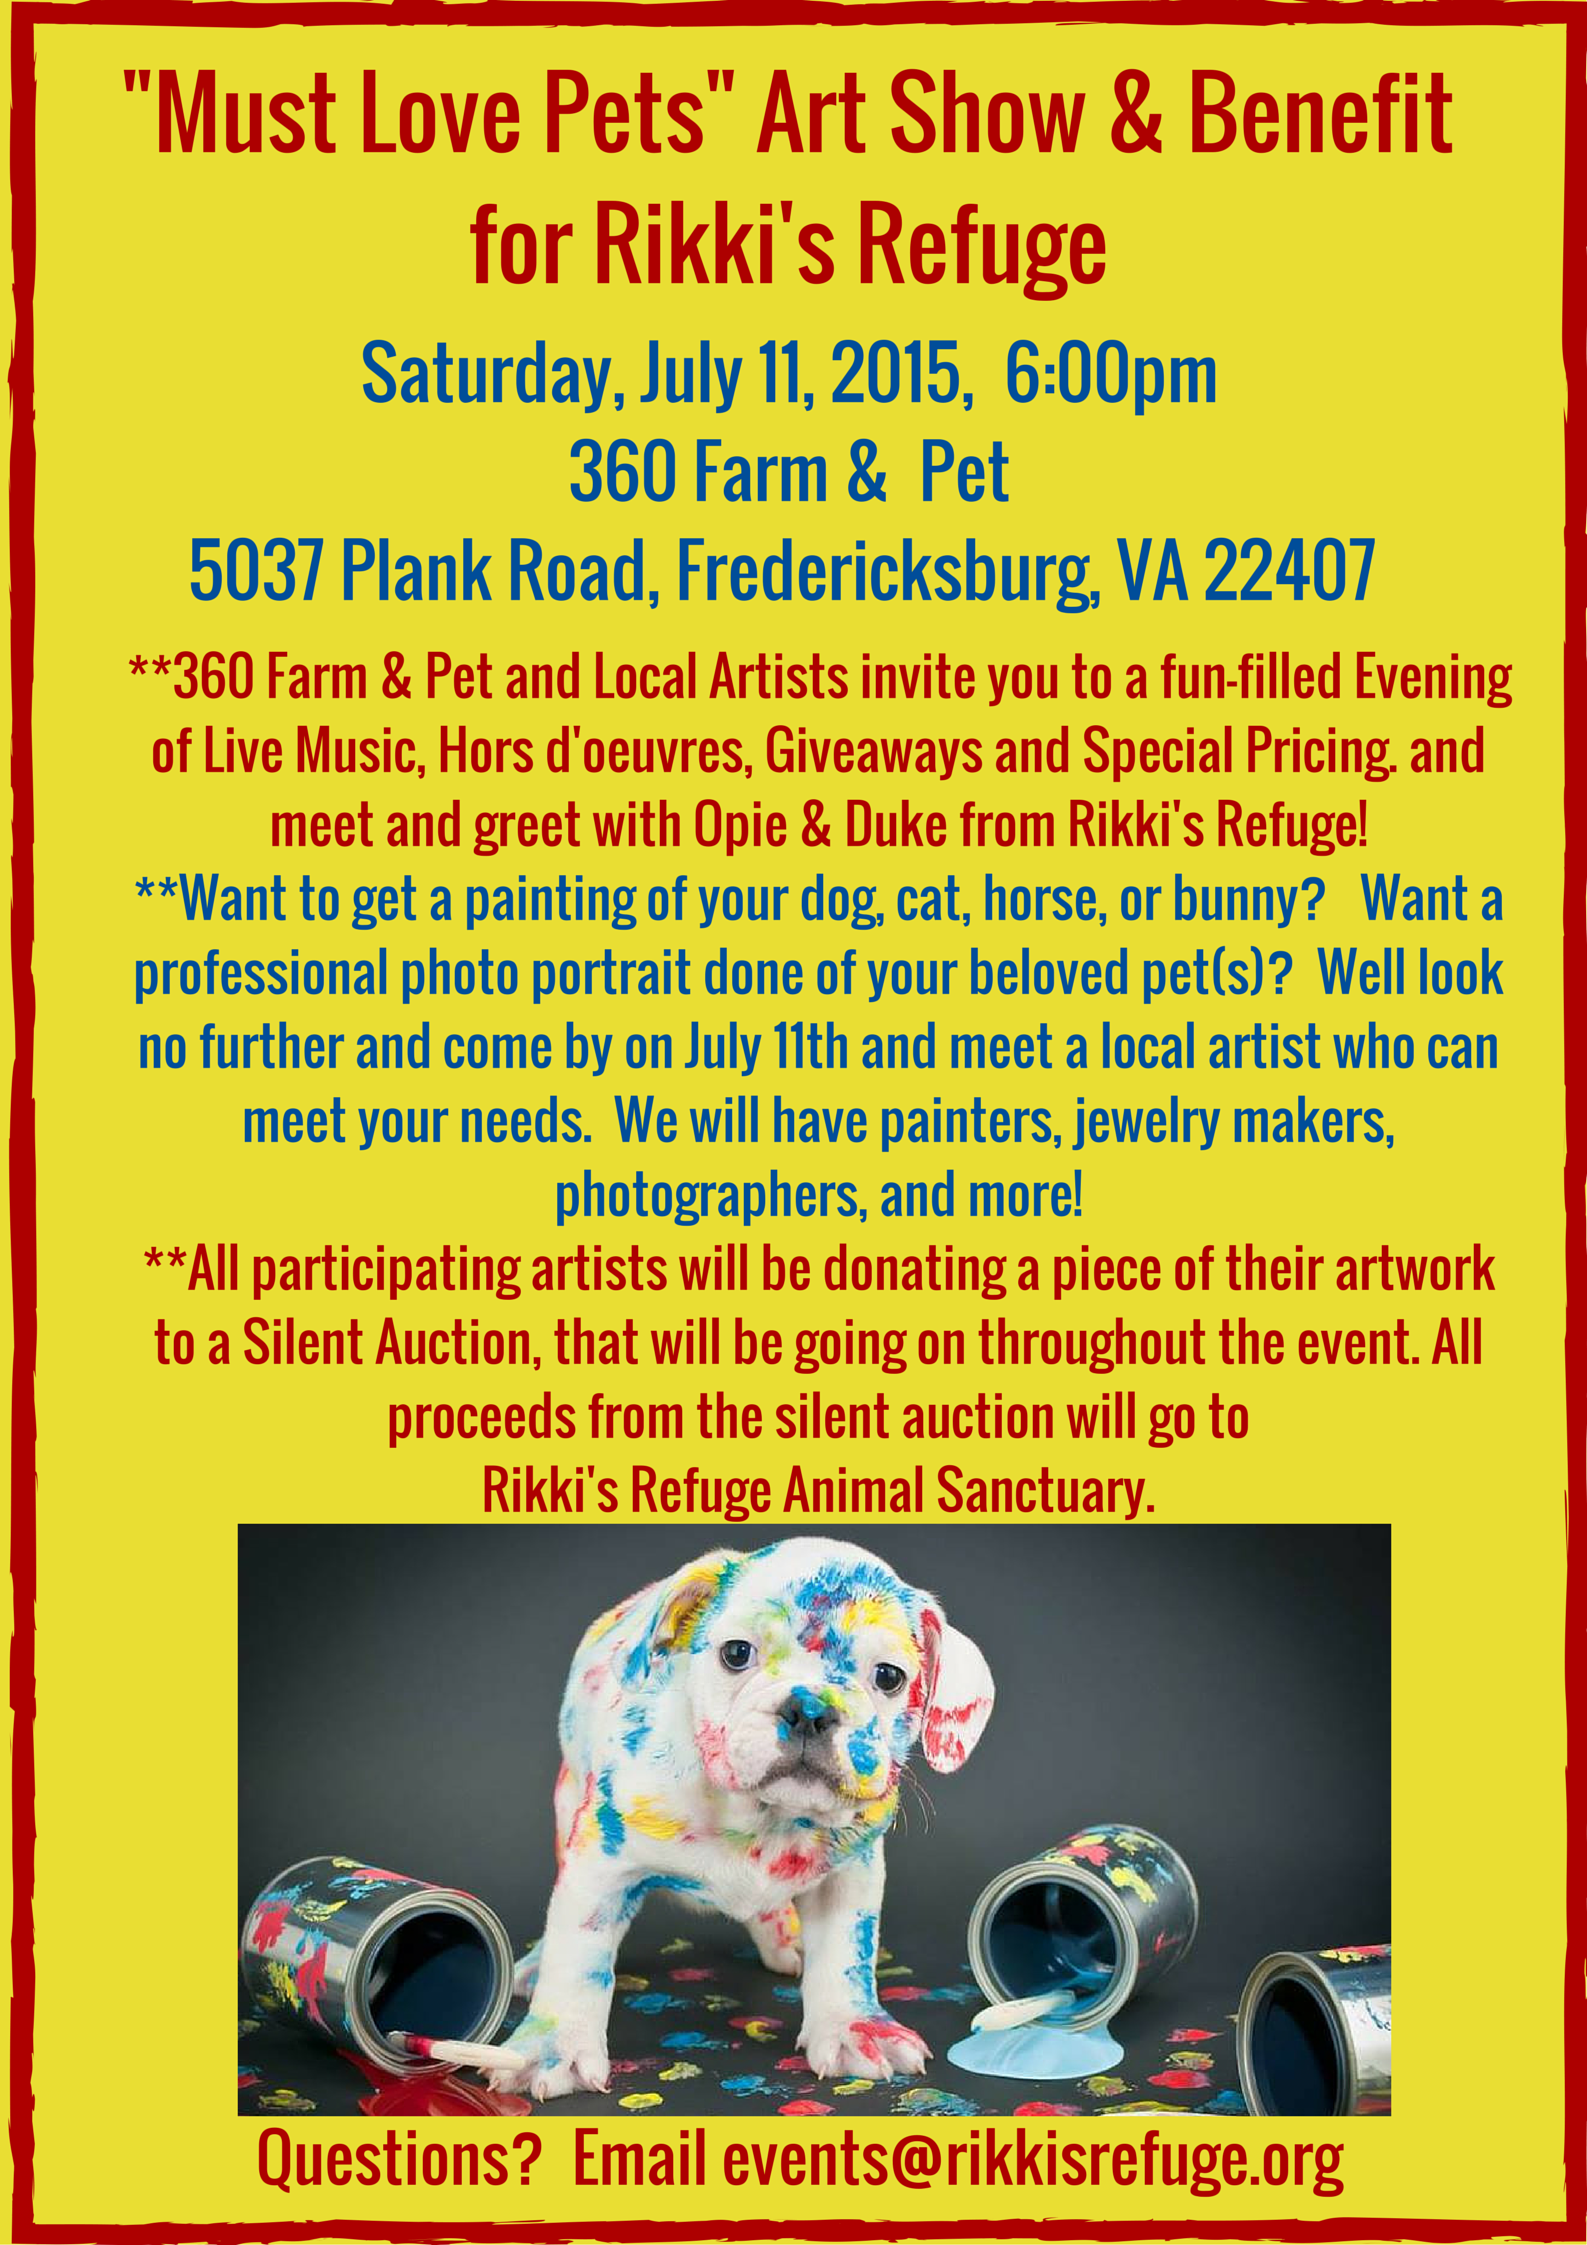 RIKKIS - Must Love Pets Art Show July 11, 2015